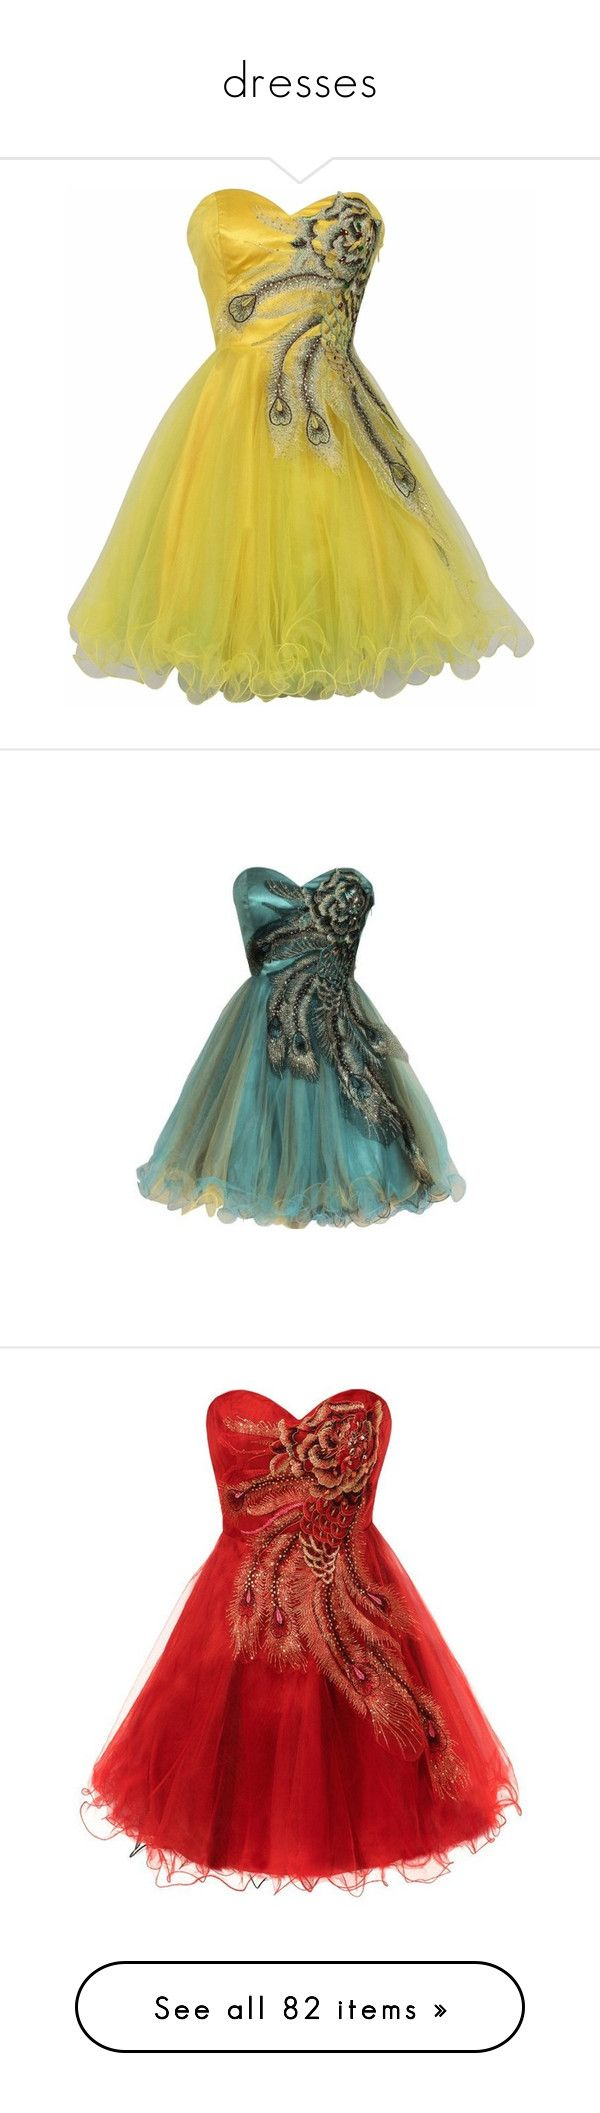 """""""dresses"""" by hope2002 ❤ liked on Polyvore featuring dresses, formal dresses, vestidos, green prom dresses, metallic dress, peacock prom dress, going out dresses, plus size party dresses, plus size and short prom dresses"""